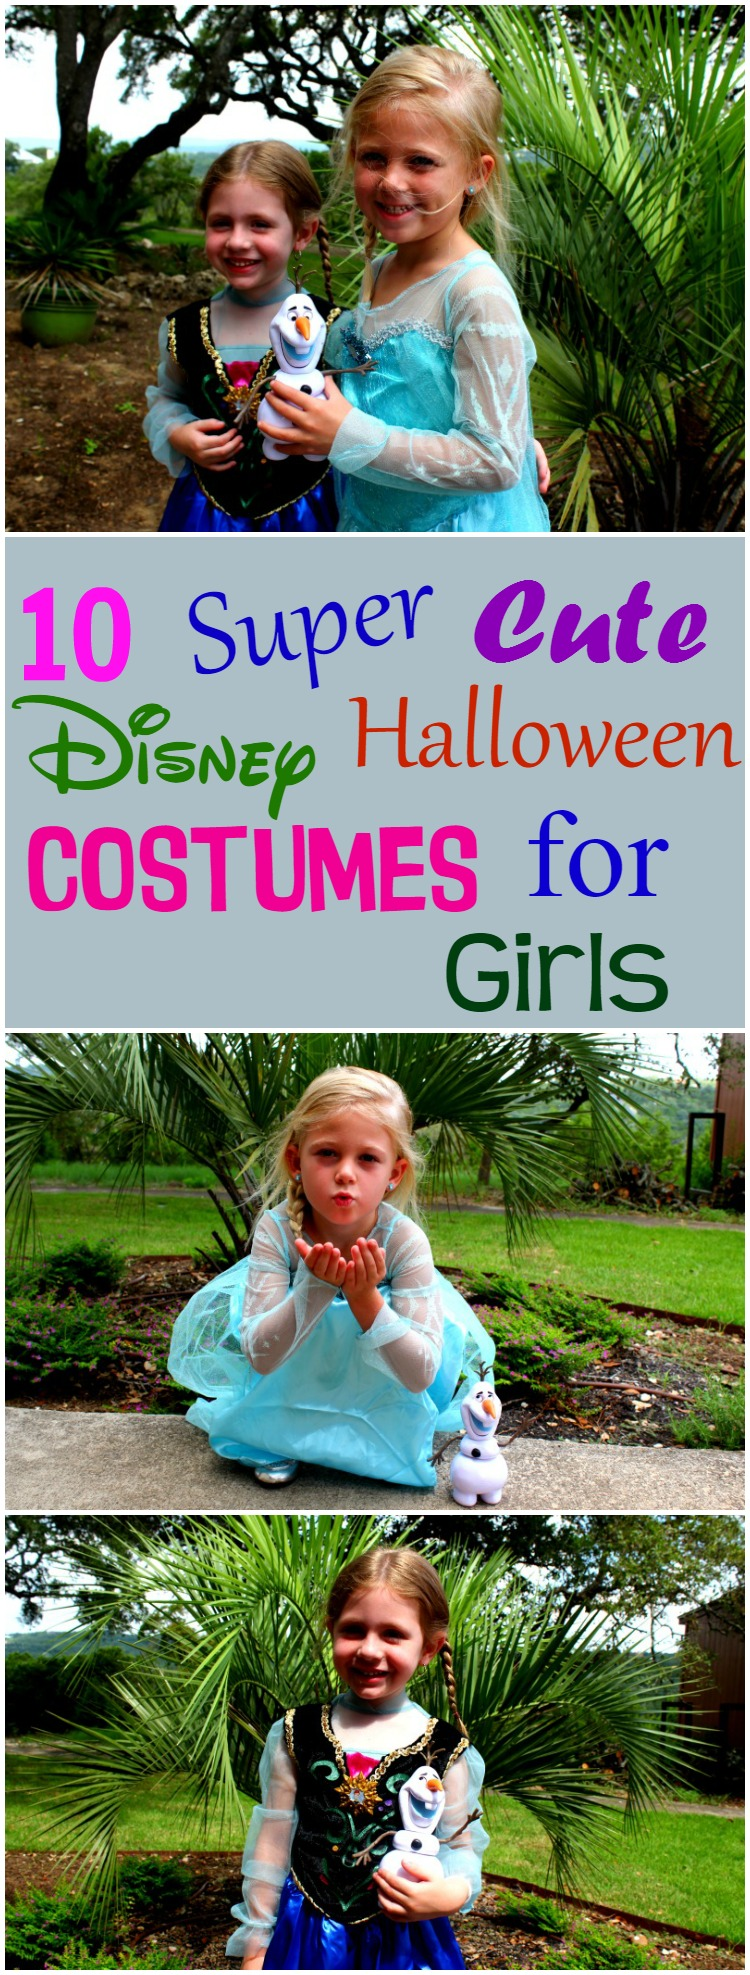 super-cute-disney-halloween-costumes-for-girls-found-at-oriental-trading